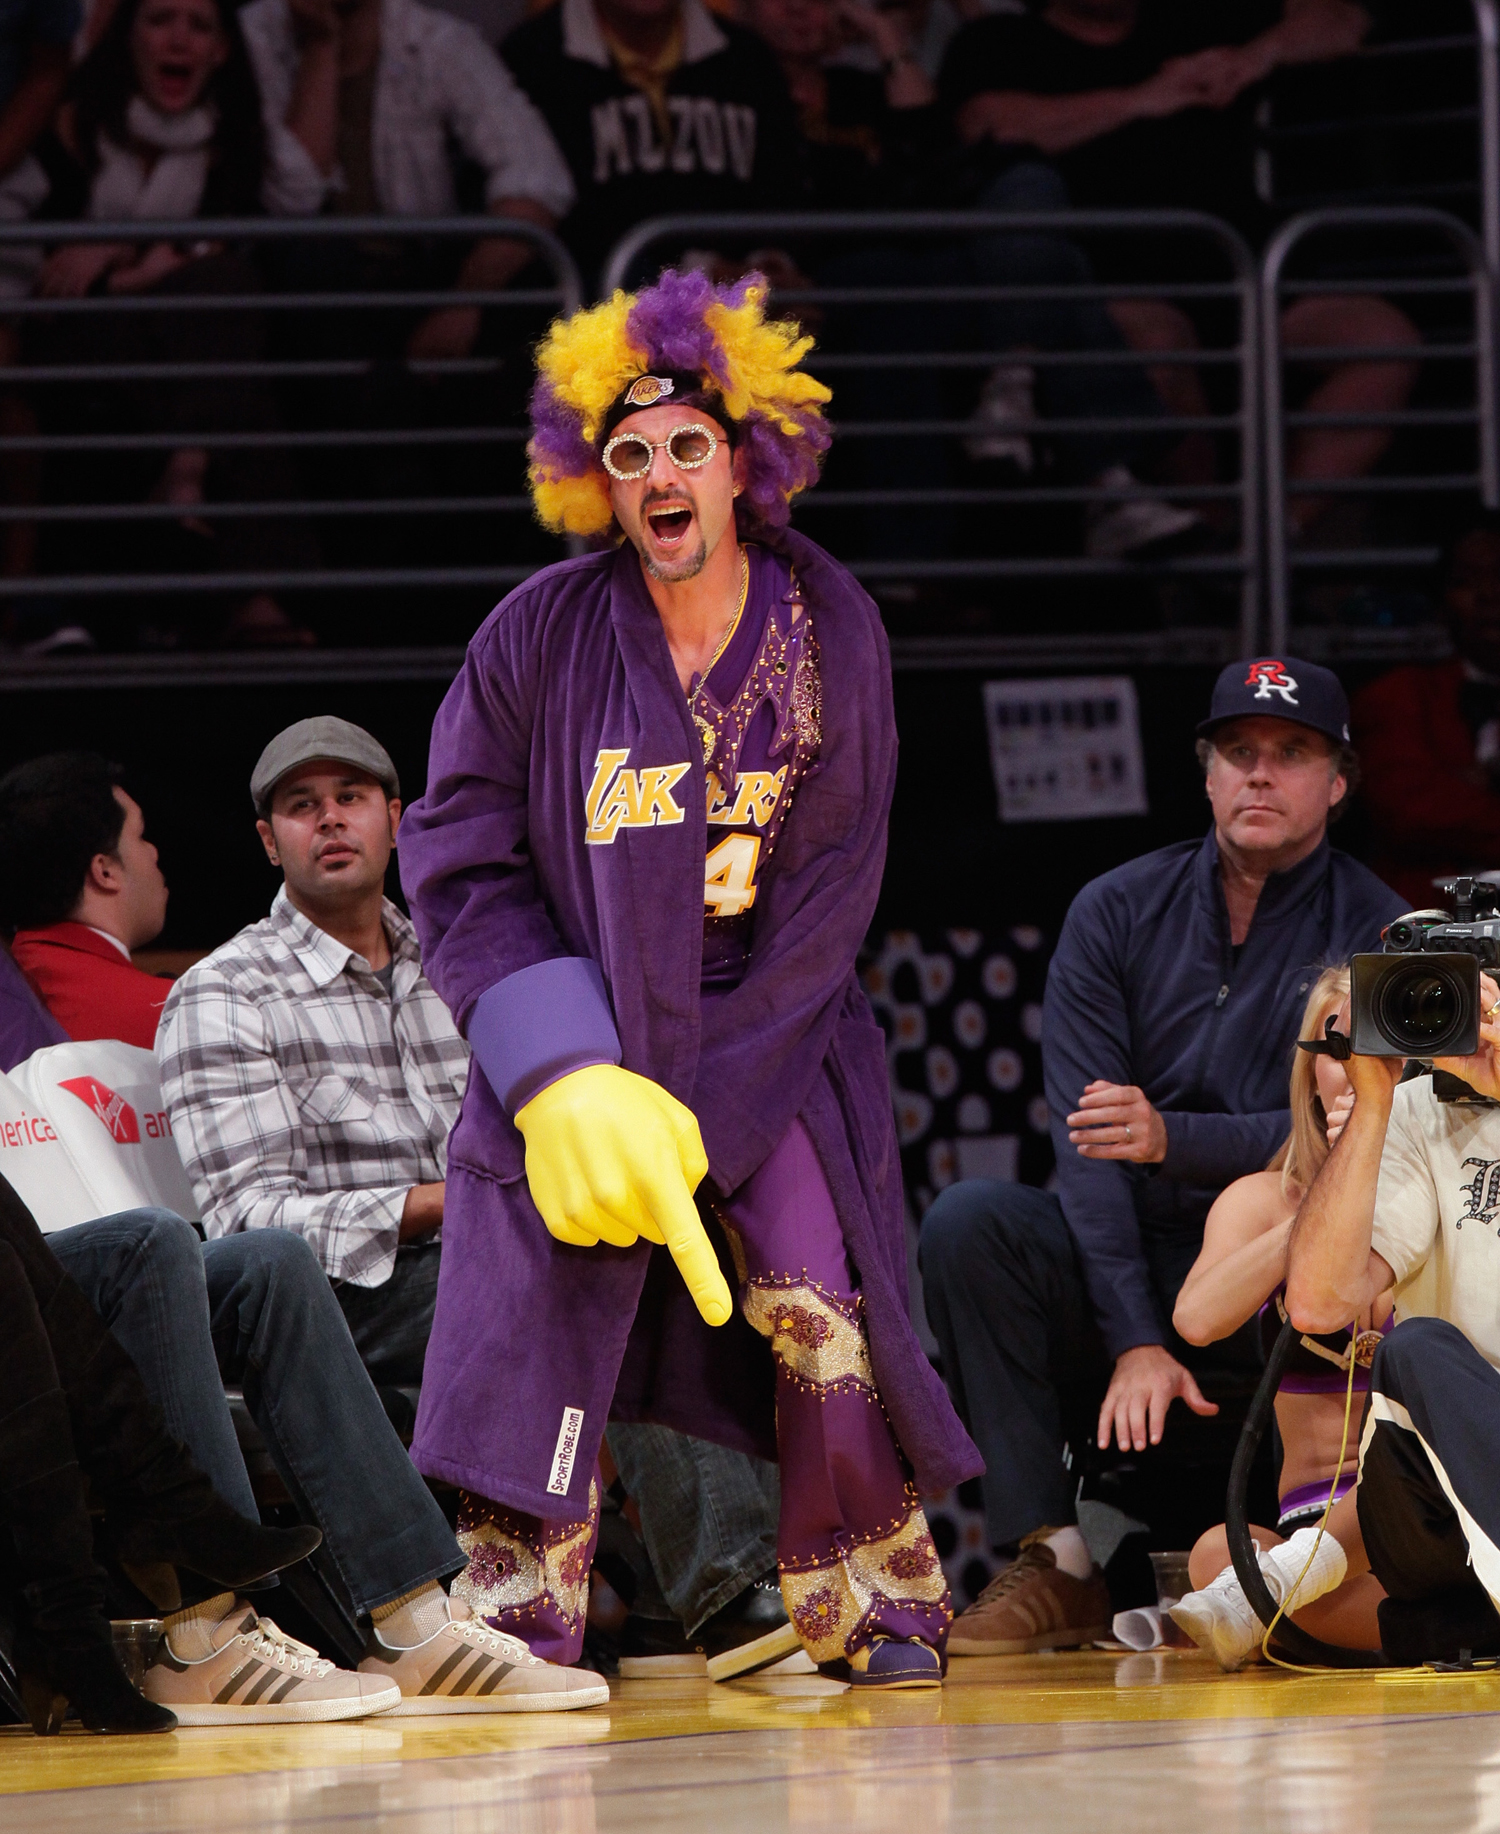 David Arquette (L) and Will Ferrell attend a game between the Phoenix Suns and the Los Angeles Lakers